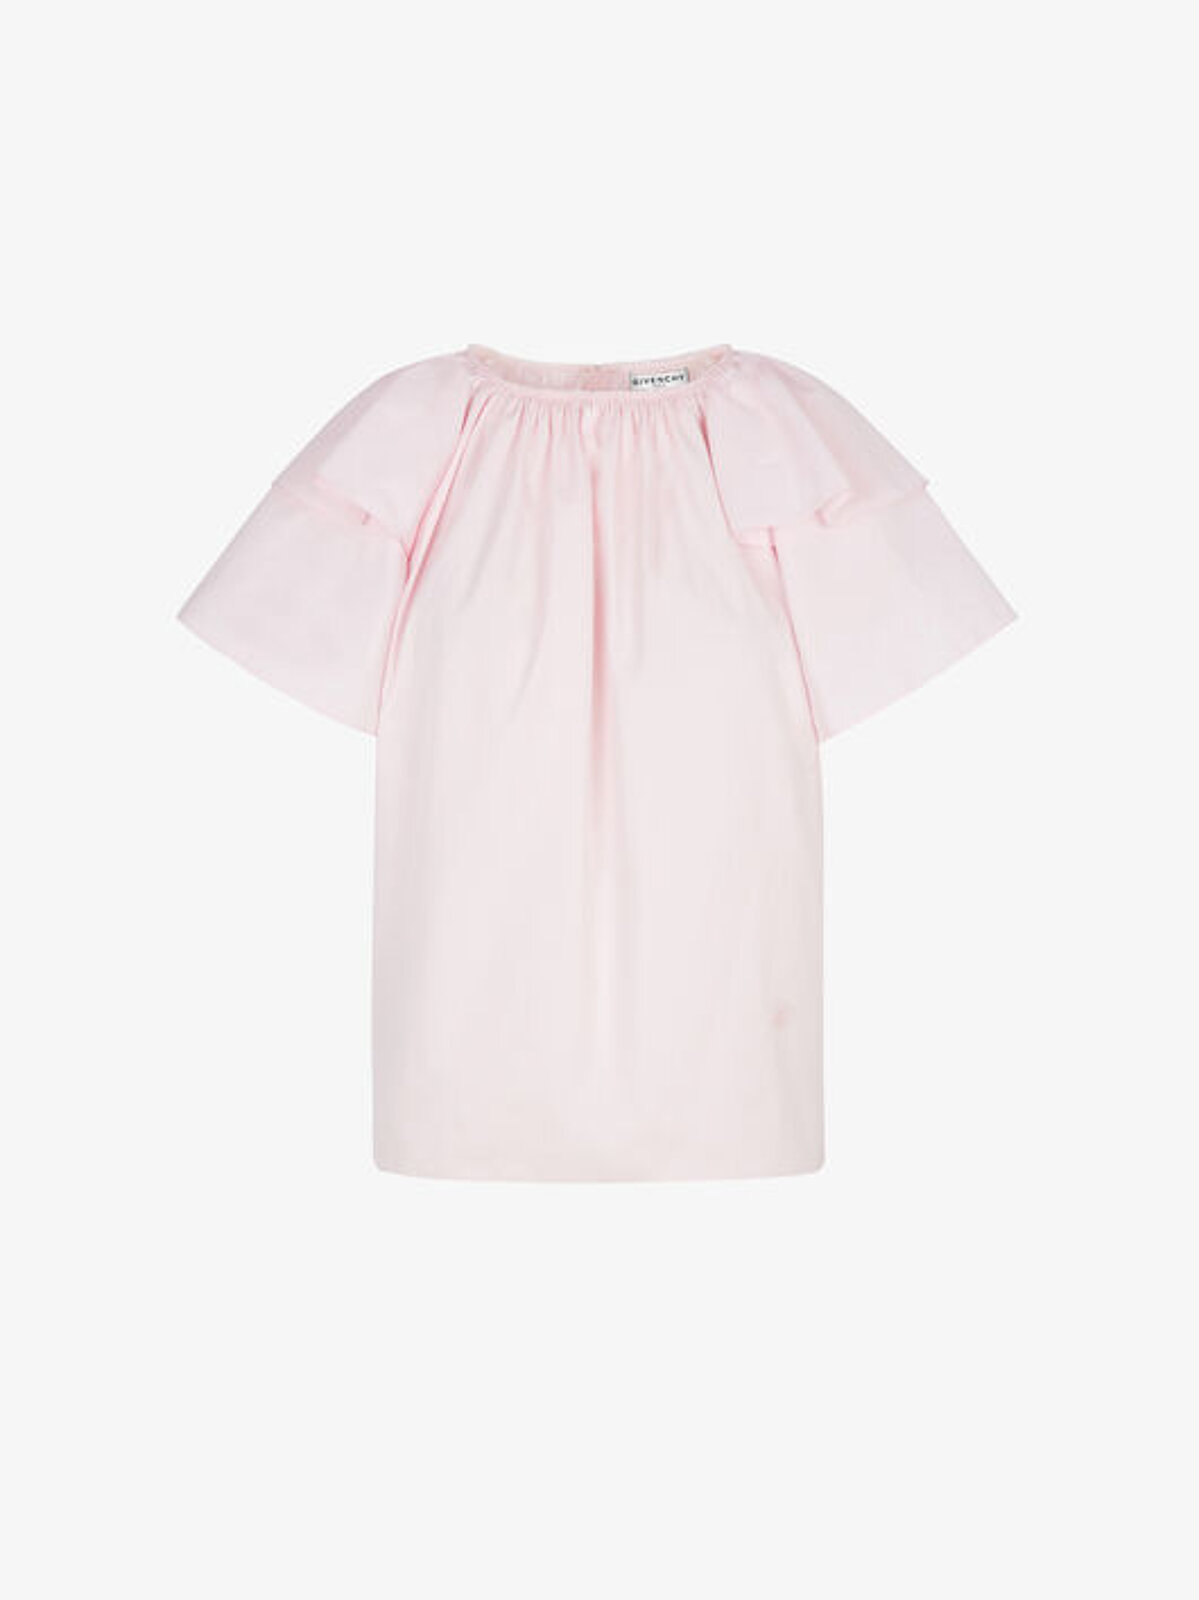 Cotton Blouse With Puff Sleeves - Givenchy